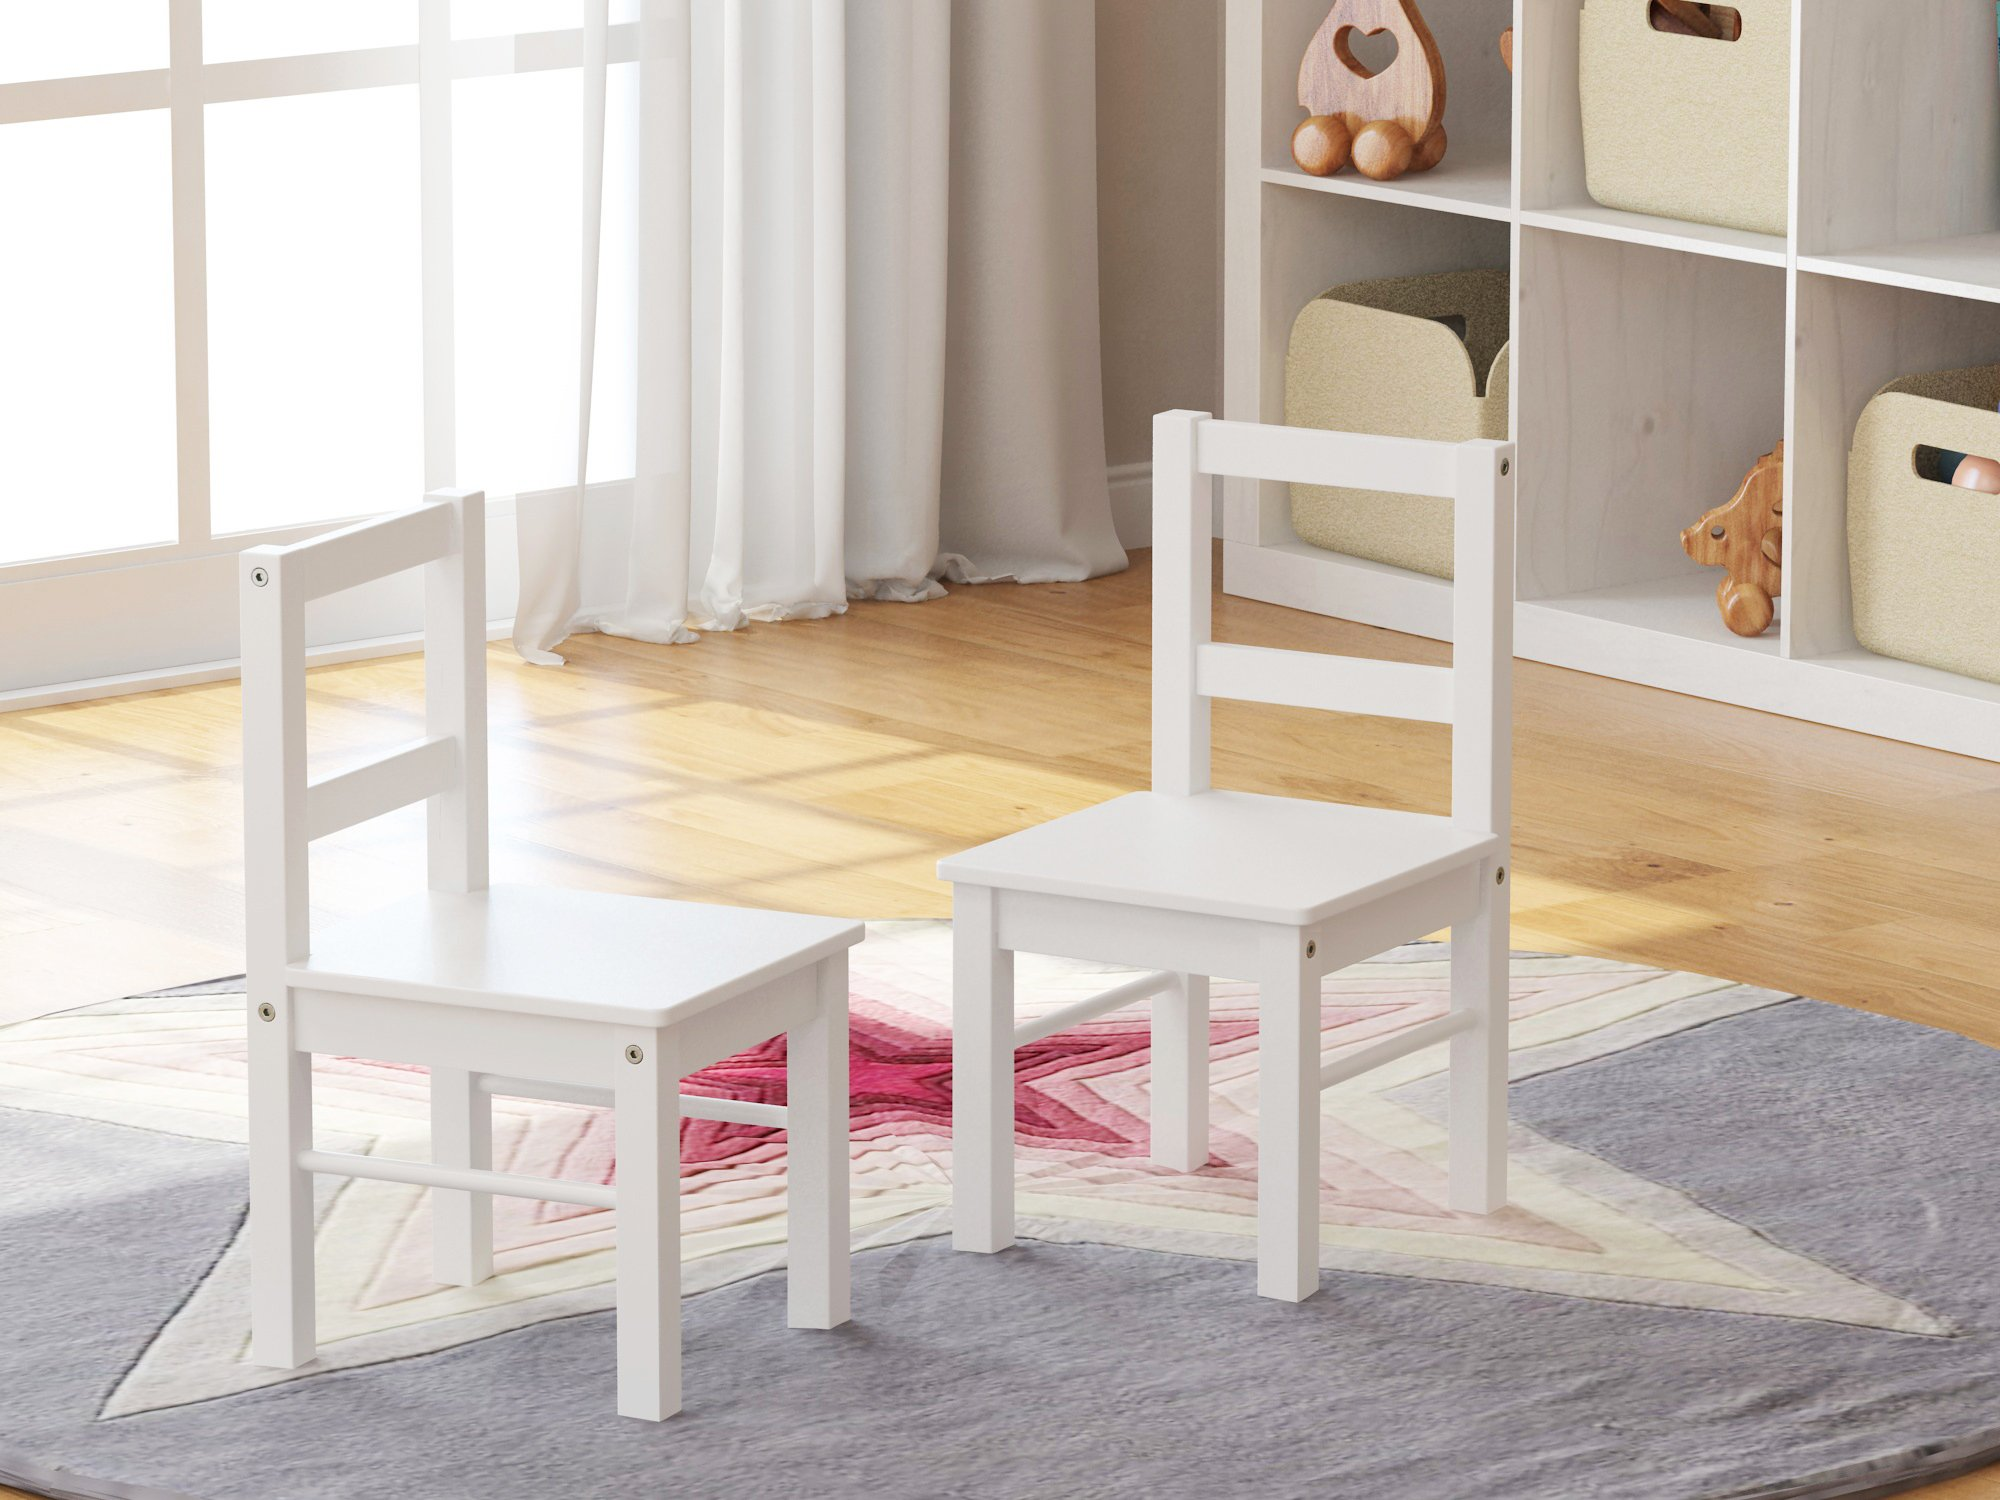 UTEX Child's Wooden Chair Pair for Play or Activity, Set of 2, White by UTEX